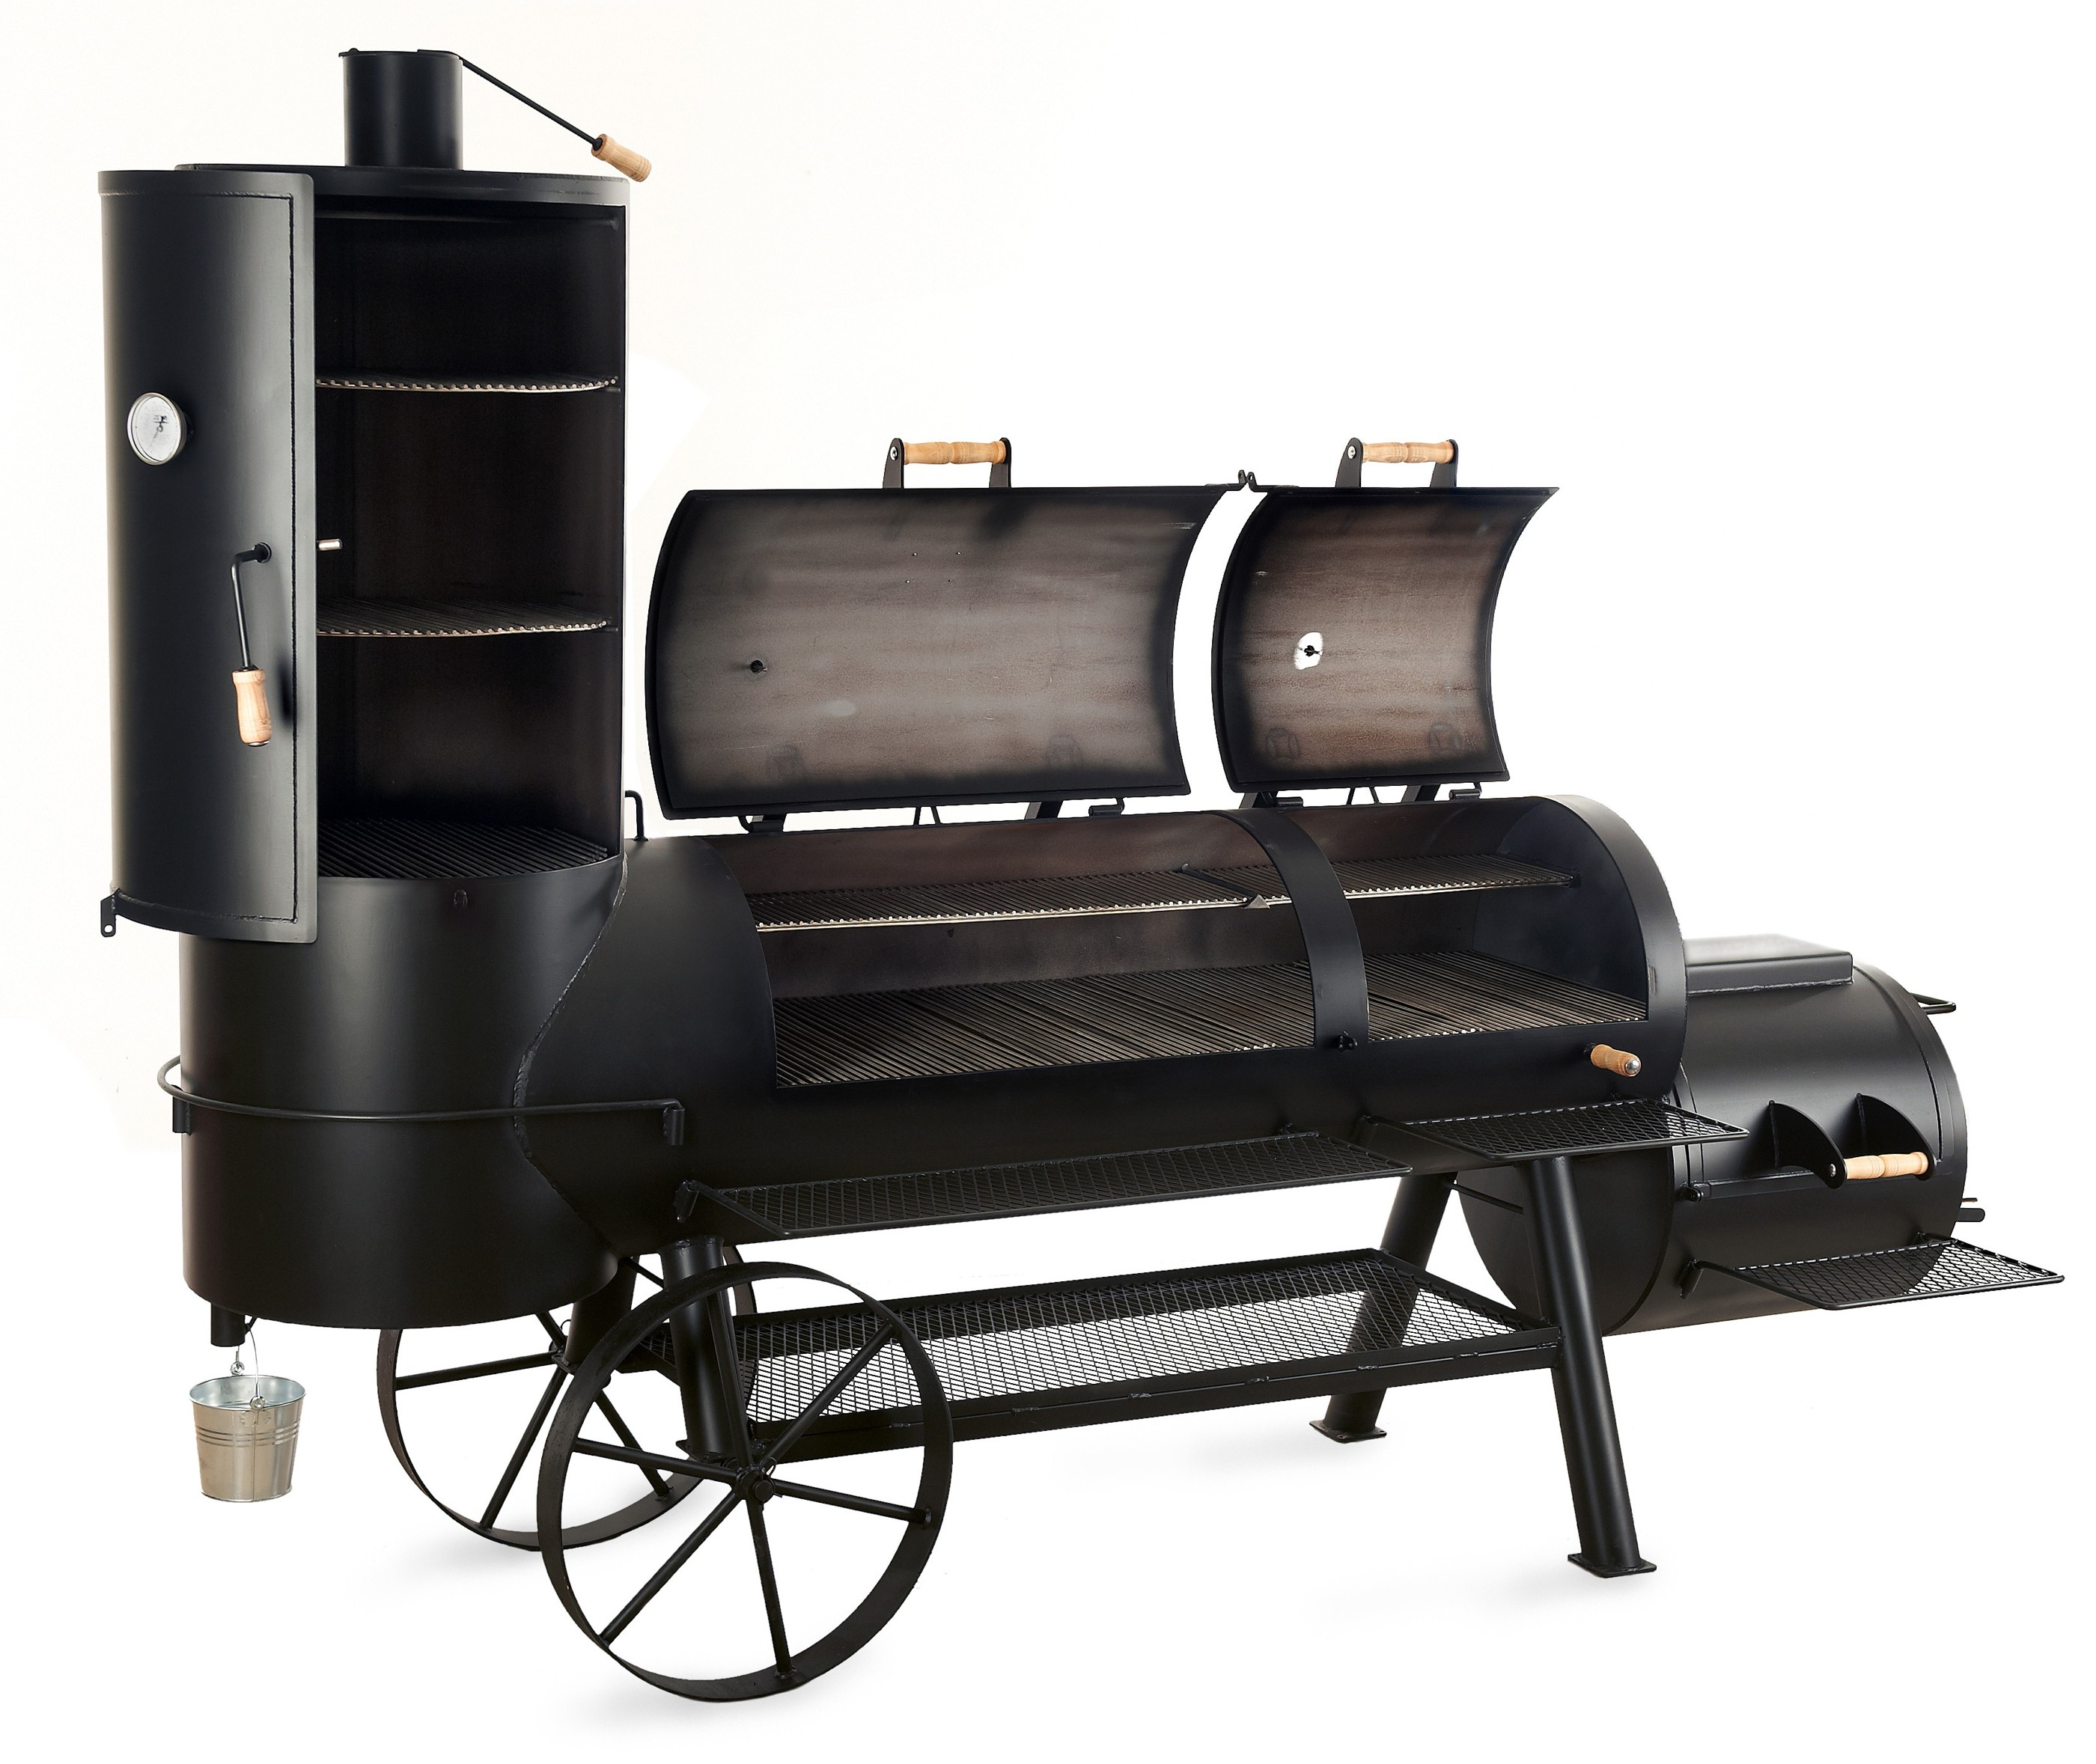 barbeque smoker holzkohle grill joe s 24 extended. Black Bedroom Furniture Sets. Home Design Ideas